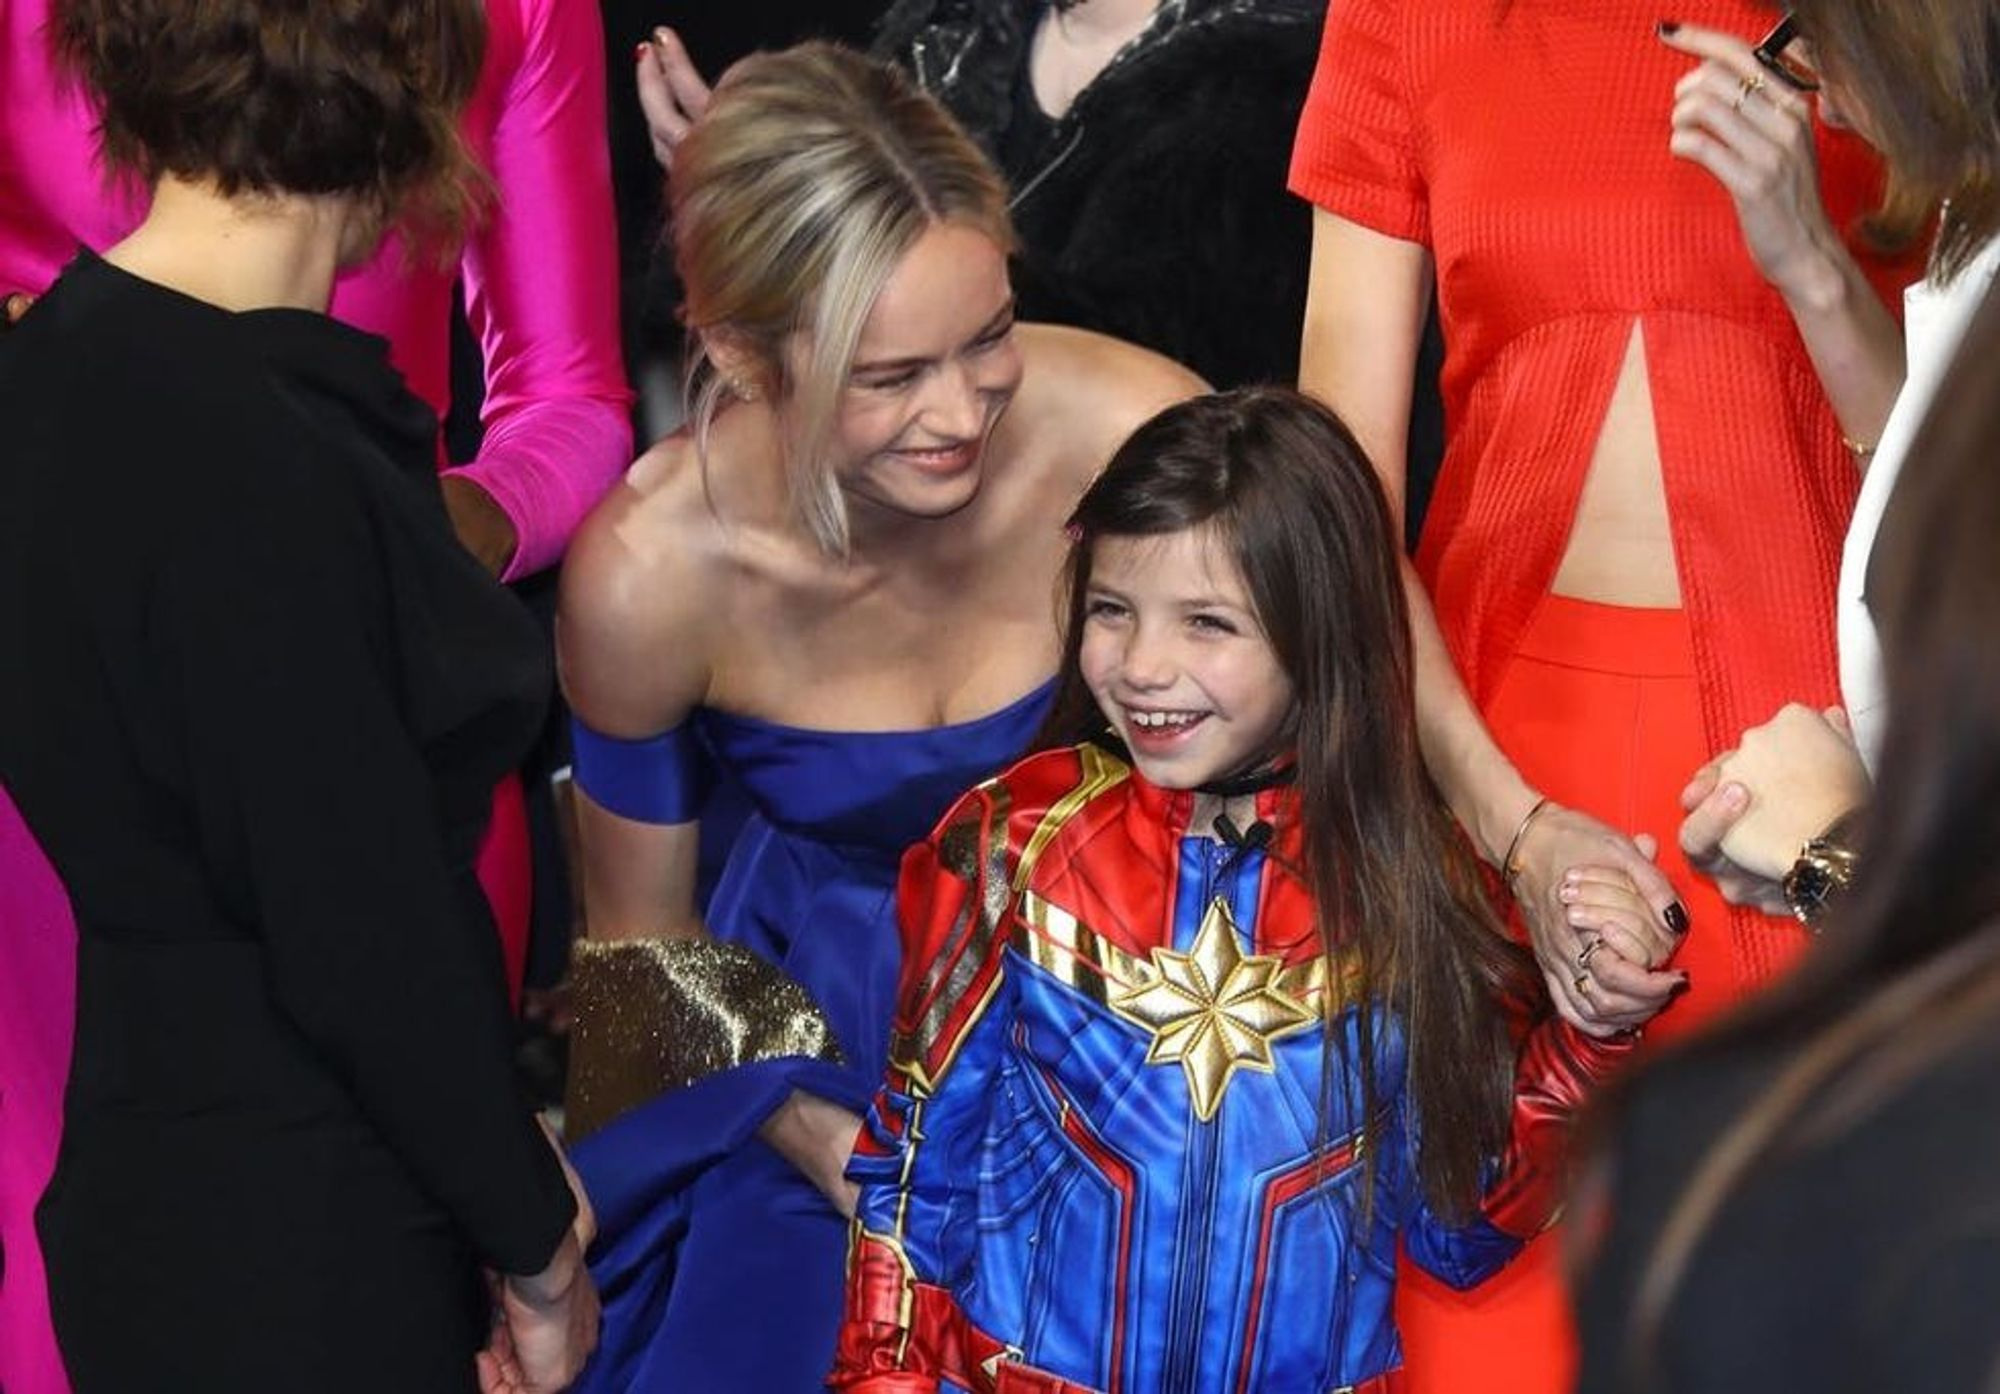 Brie Larson Meeting a Little Girl Dressed as Captain Marvel Is the Best Thing You'll See Today